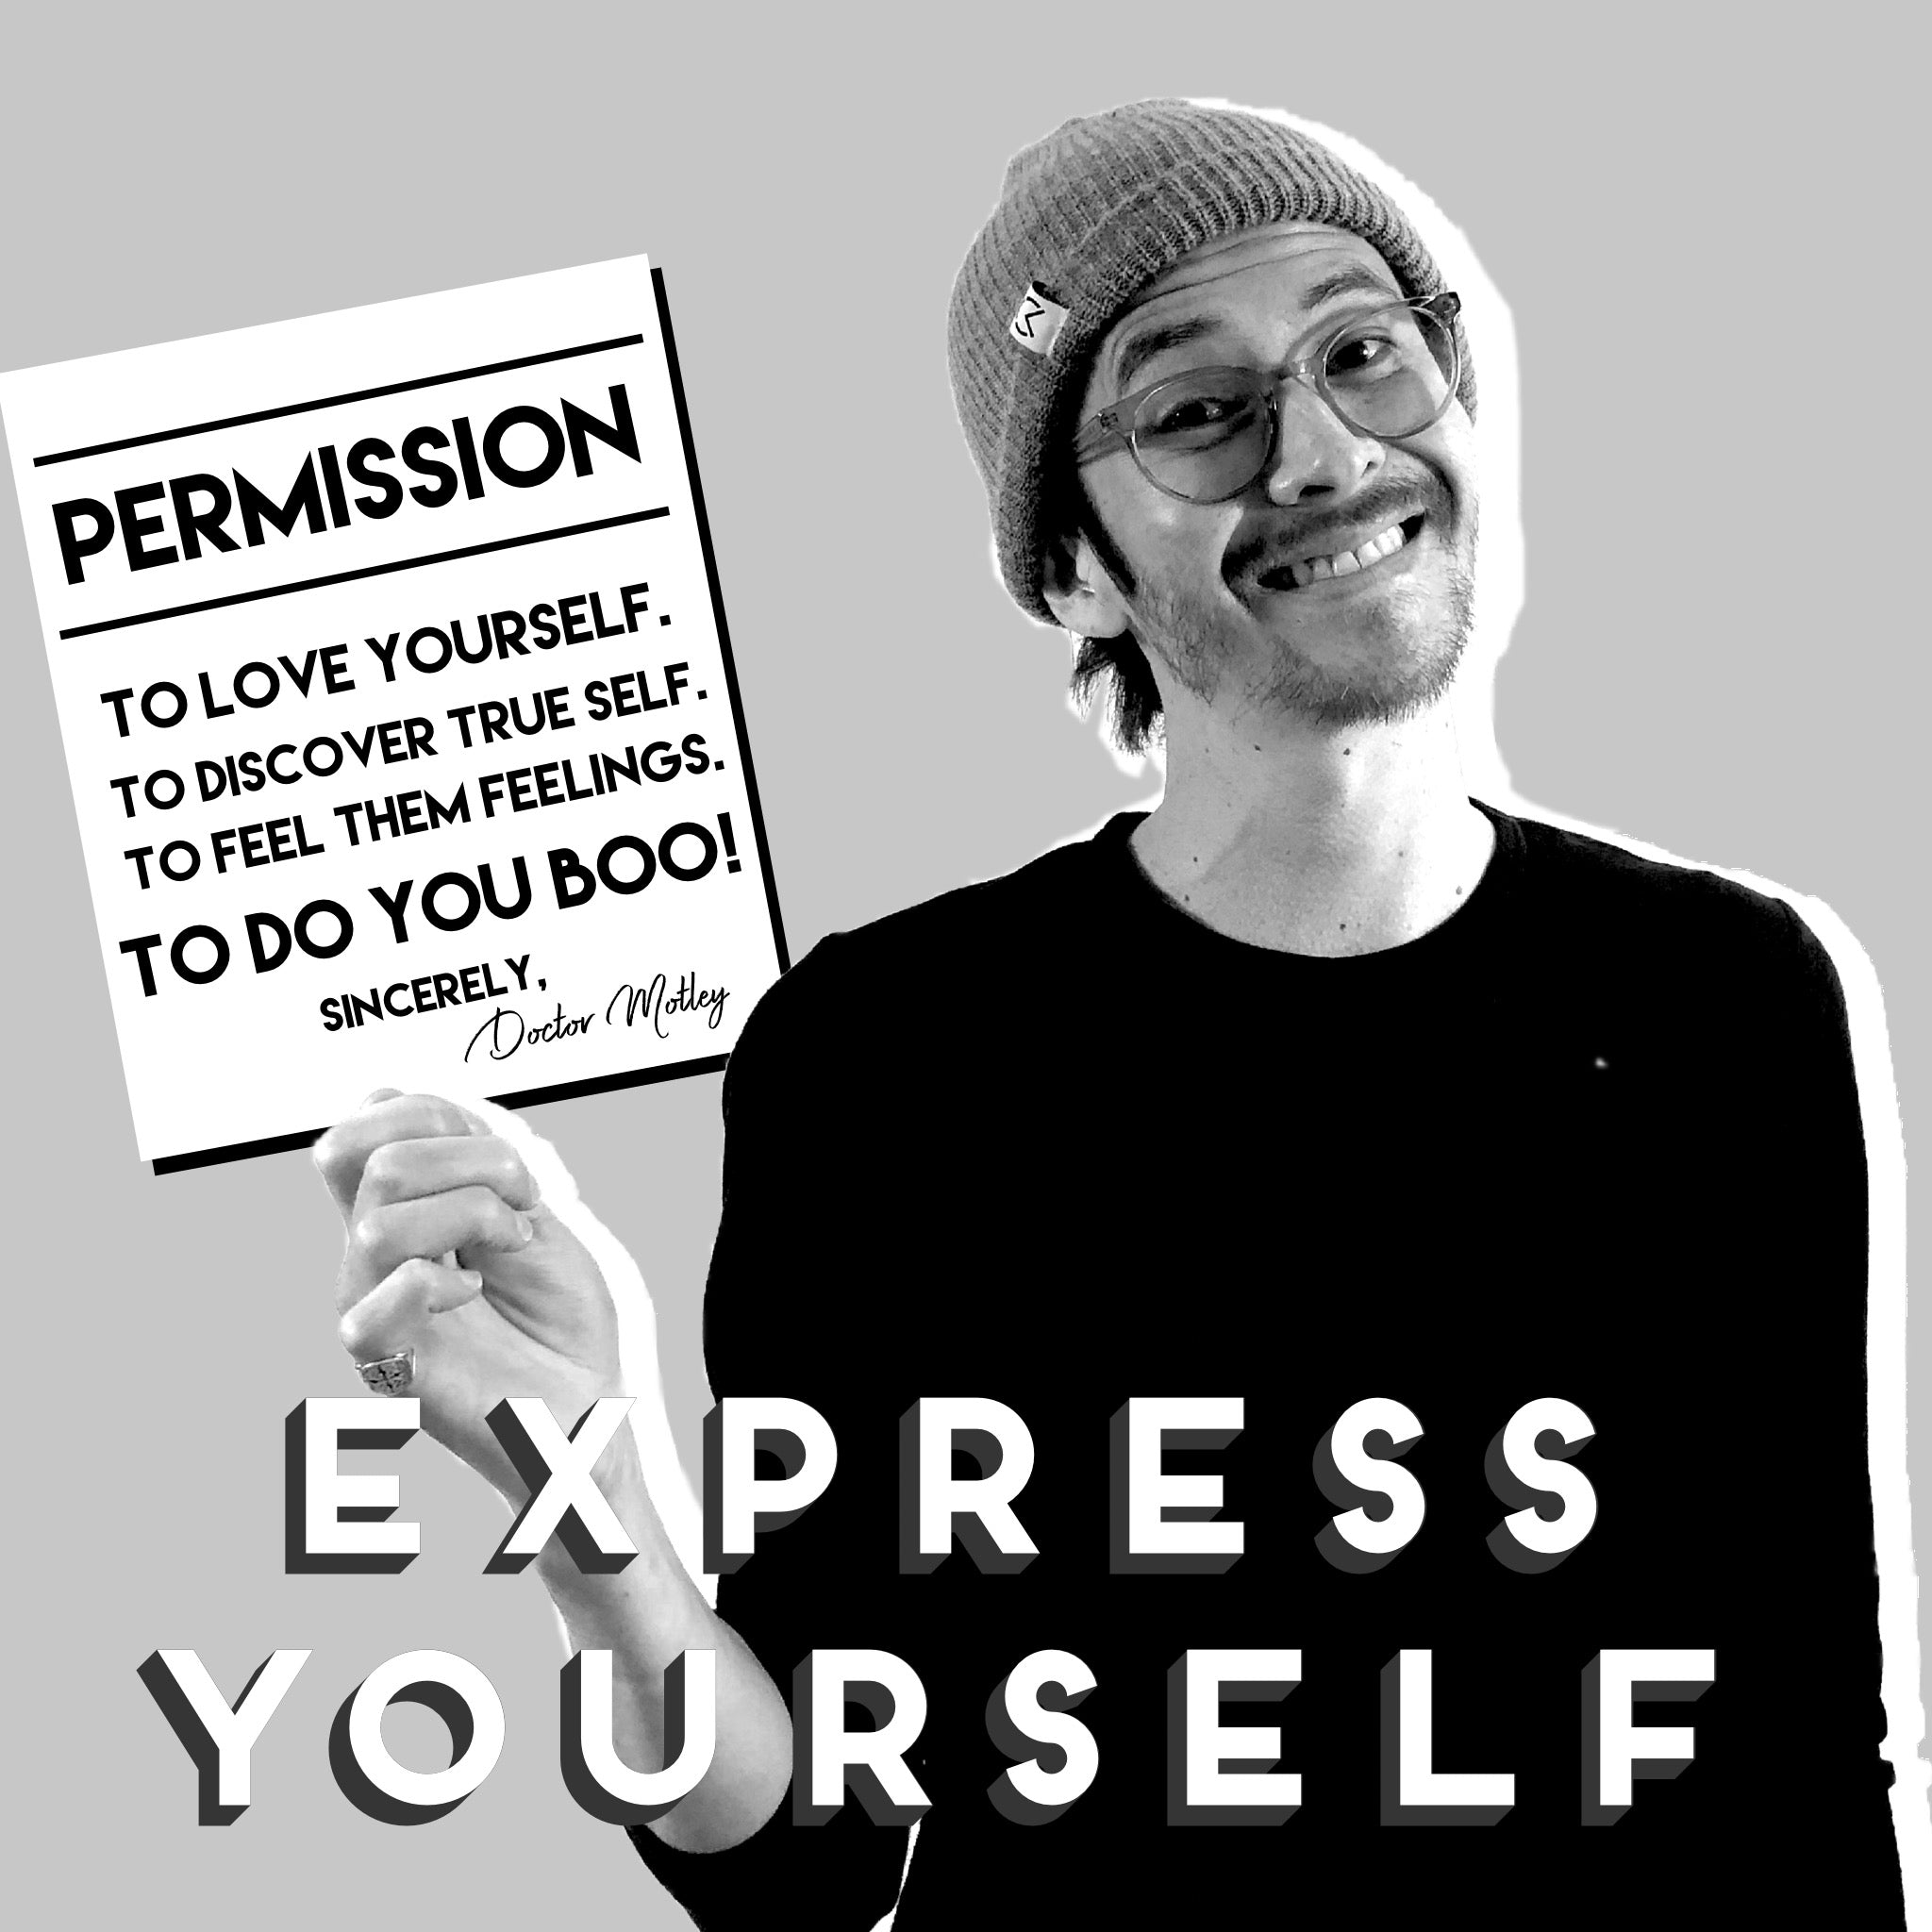 Doctor Motley - Permission to Express Yourself